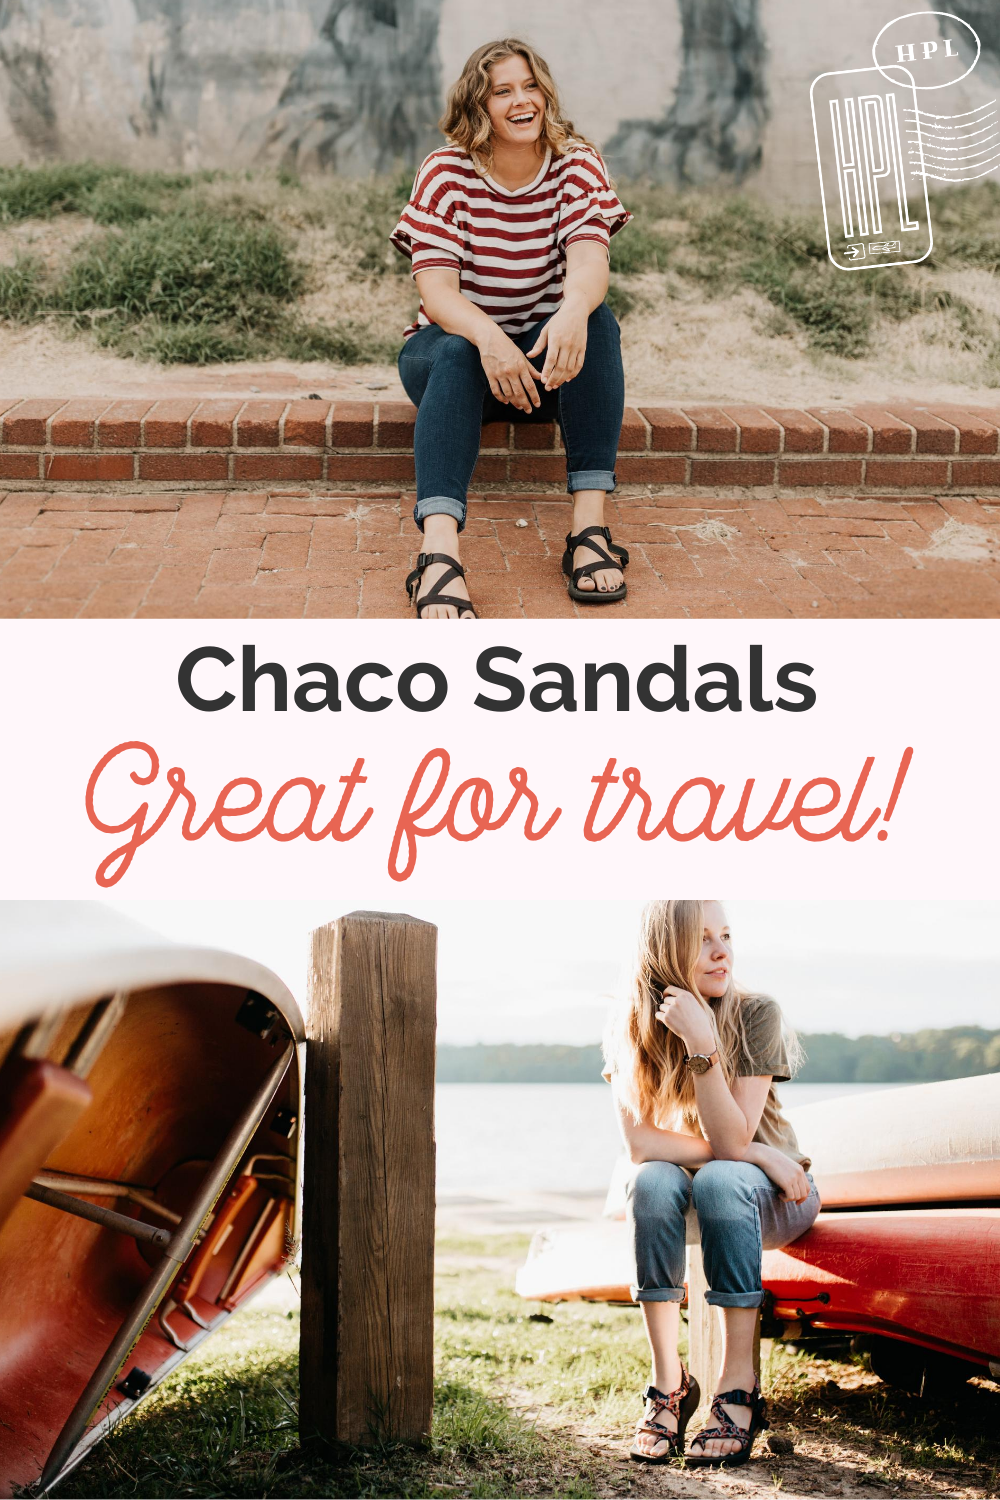 chaco sandals for travel